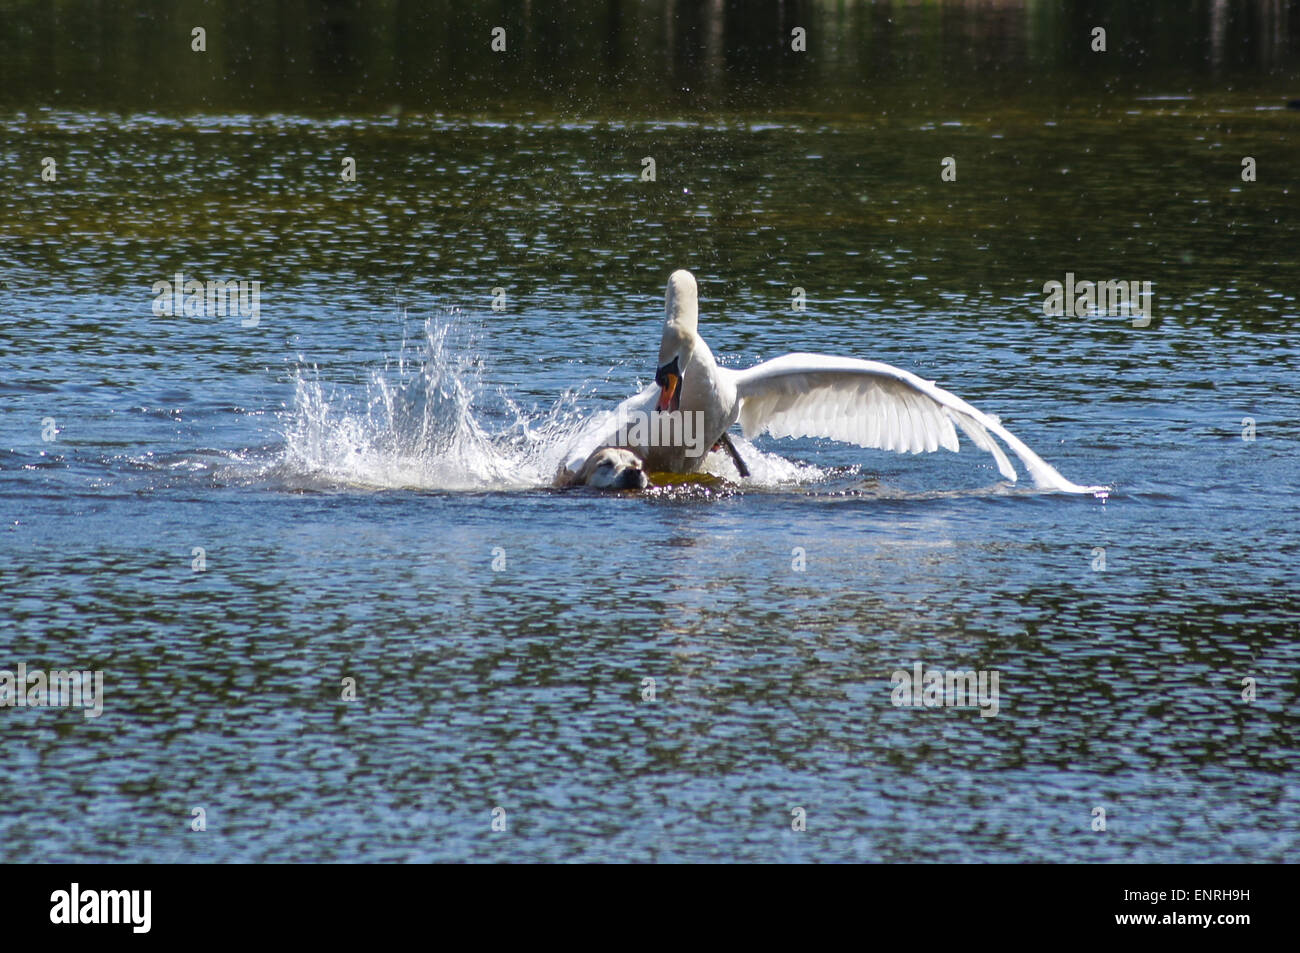 wanstead-park-london-uk-sunday-10-may-2015-a-swan-launches-a-violent-ENRH9H.jpg